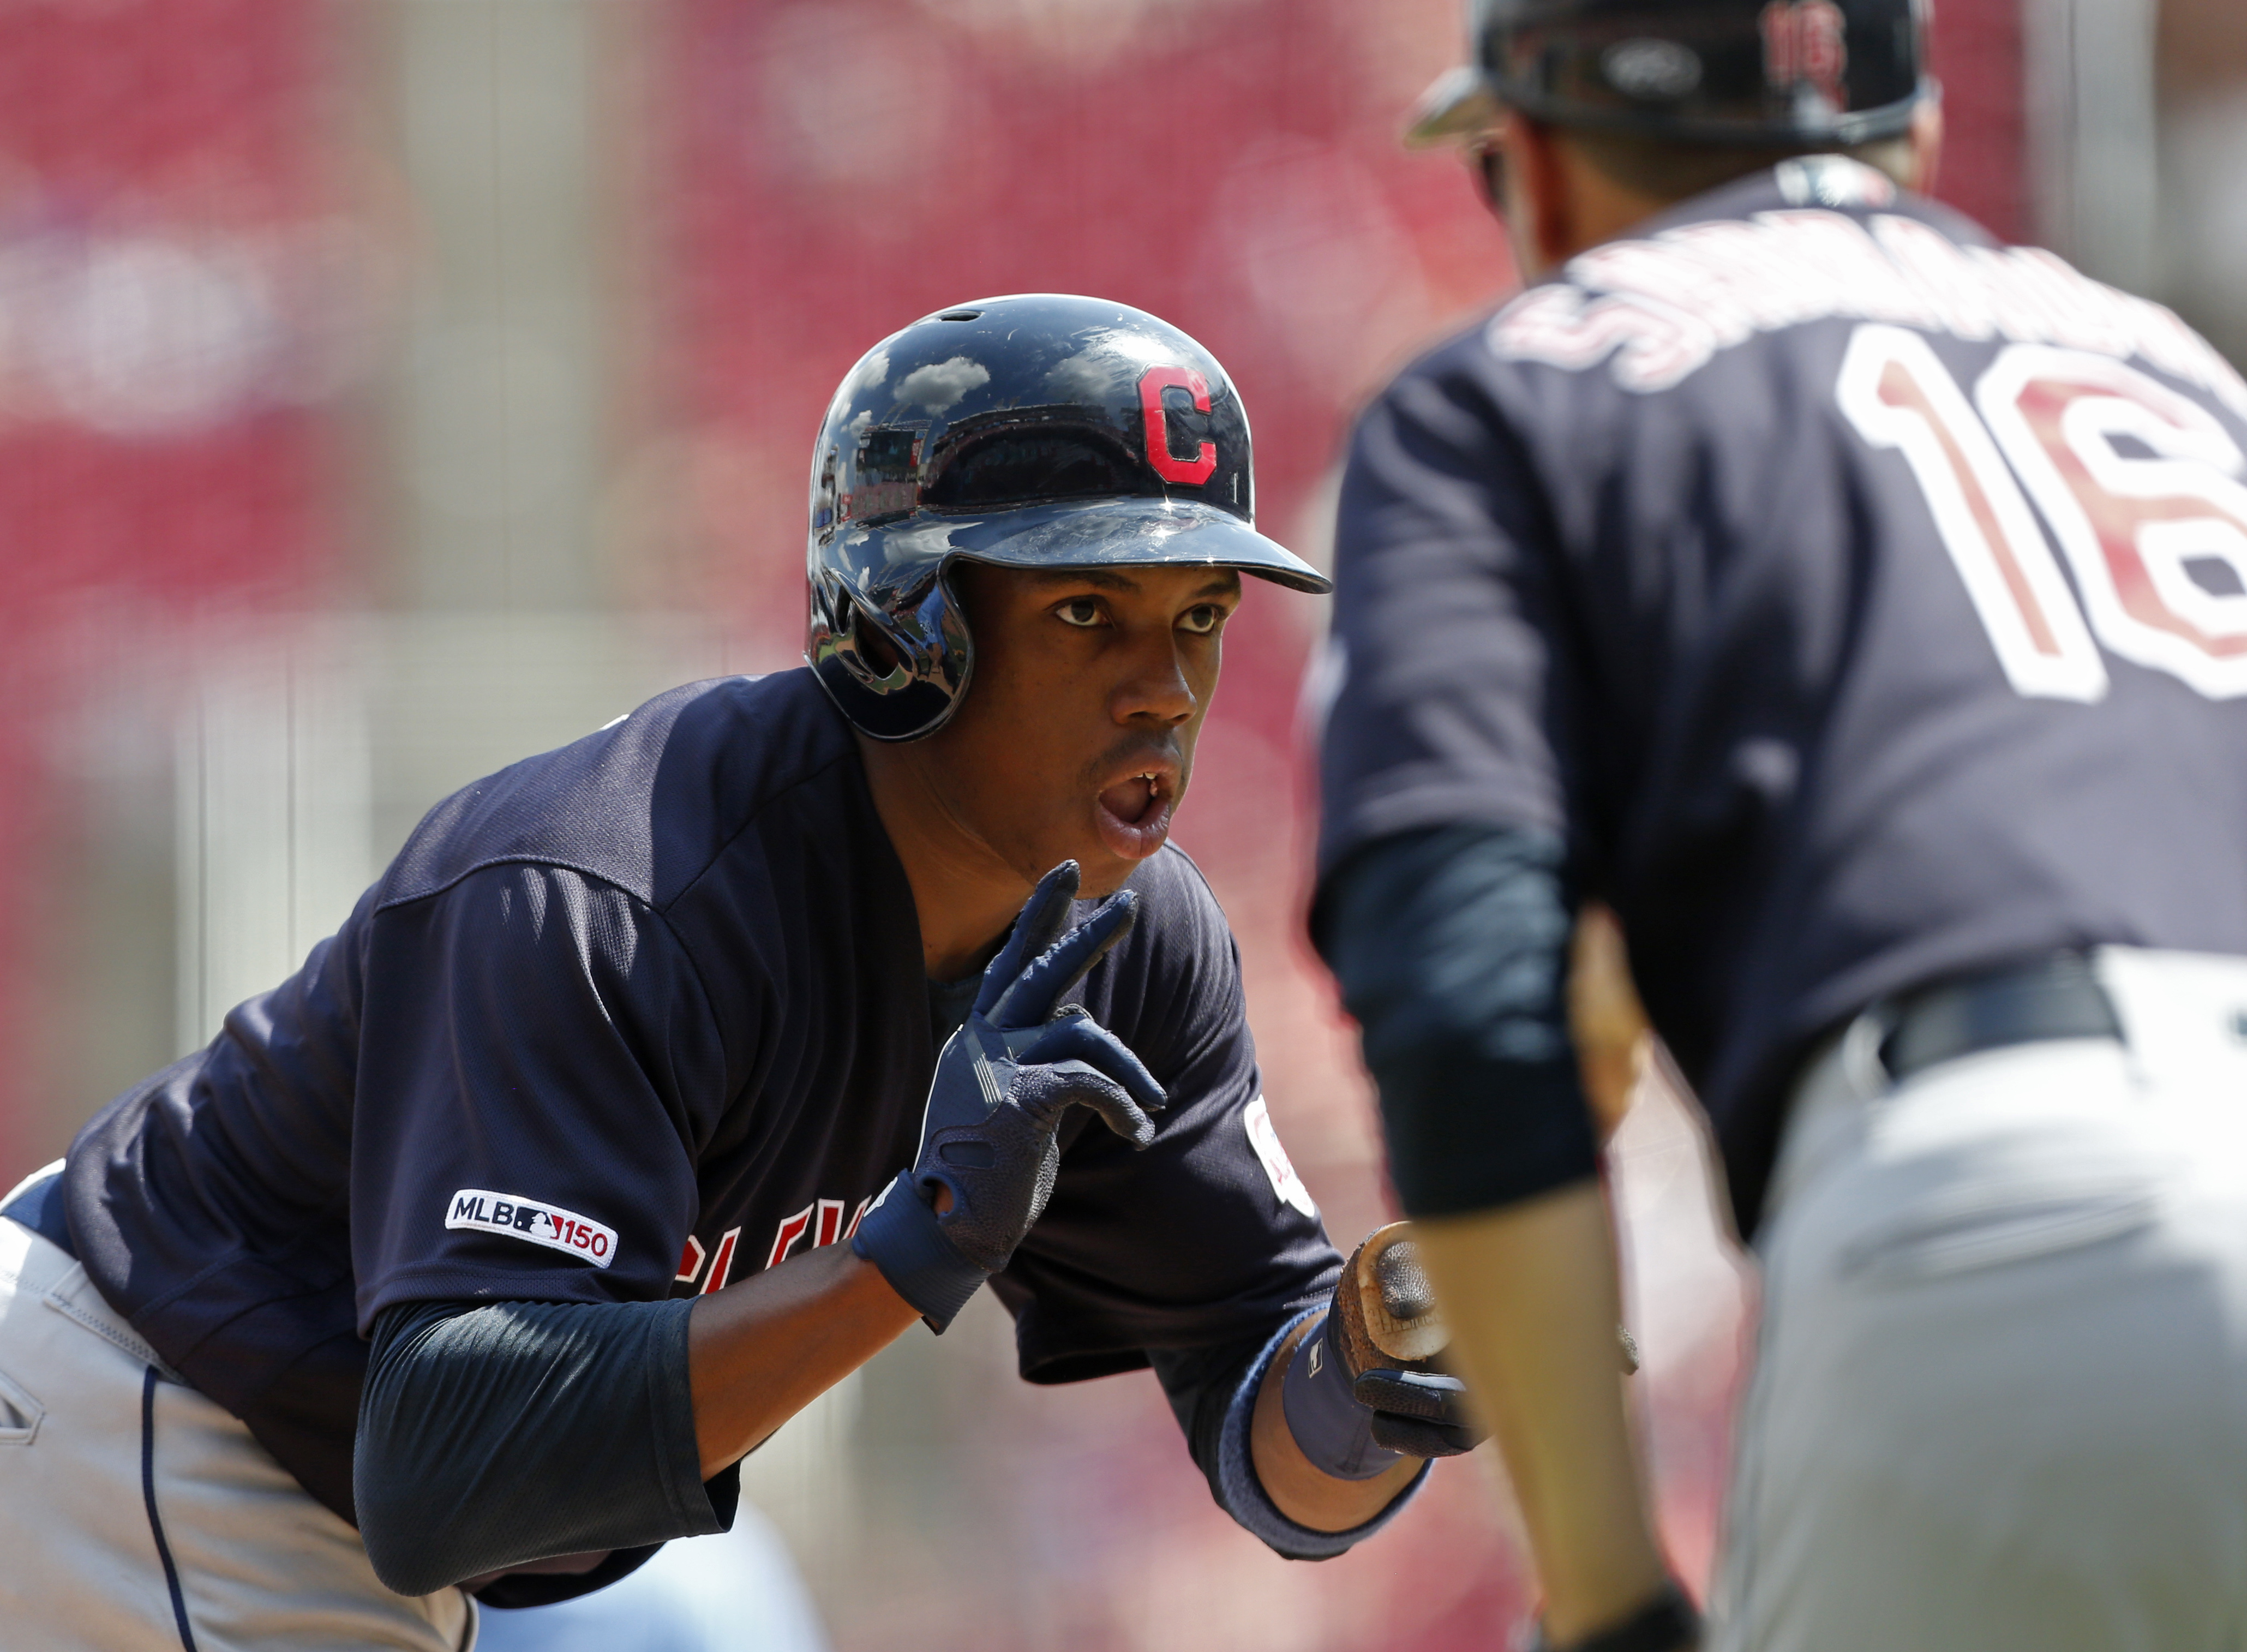 Allen leads Indians to 11-1 romp over Reds